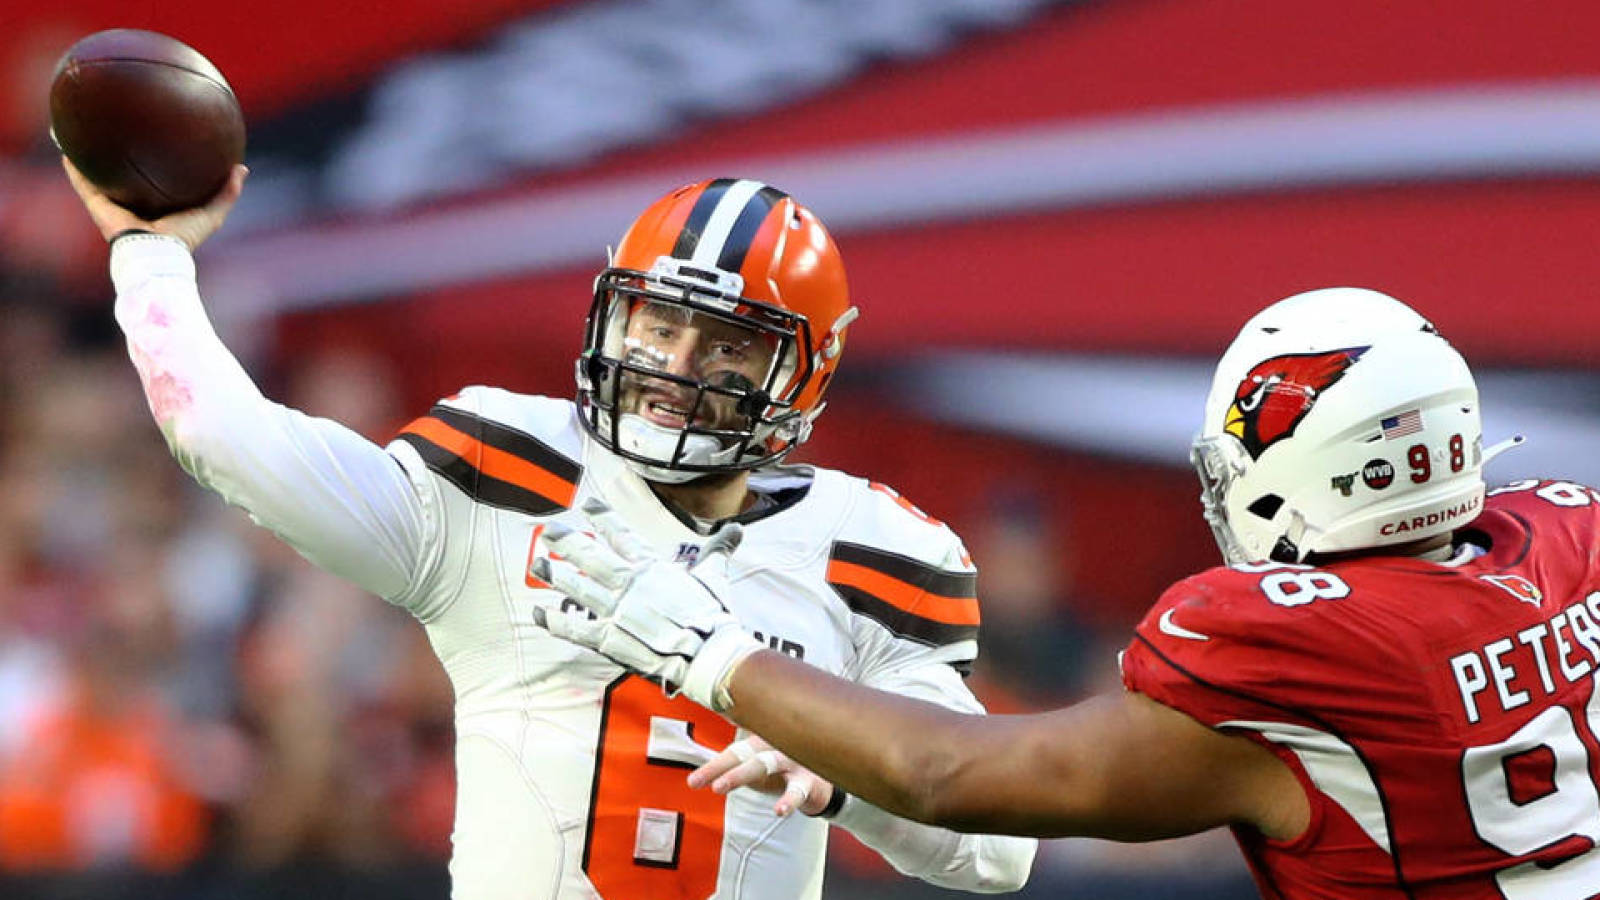 Every throw graded: Ultimate scouting report of Browns' Baker Mayfield